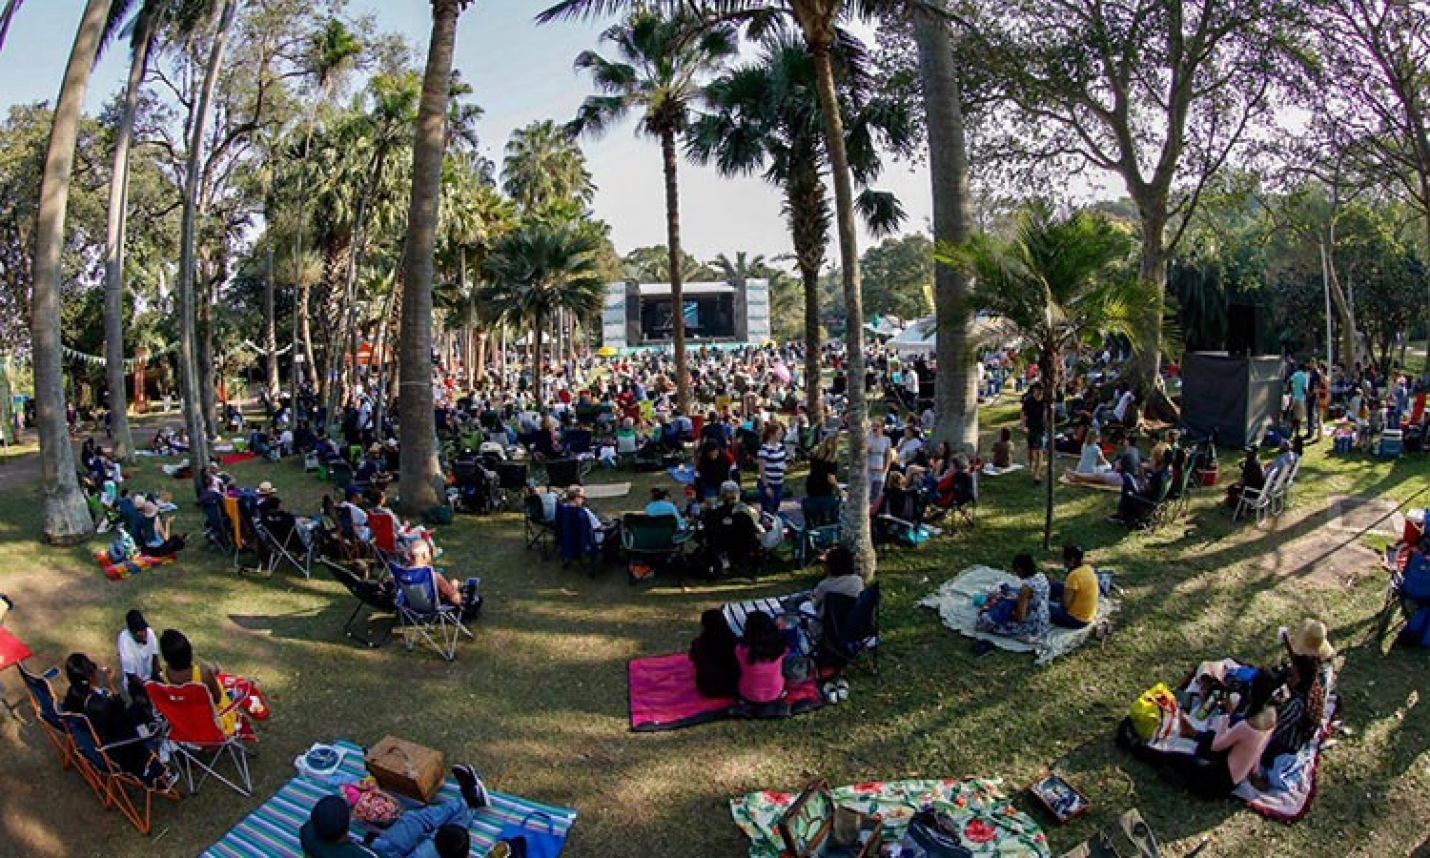 Sunshine, Picnics and some of South Africa's best Acoustic Music.